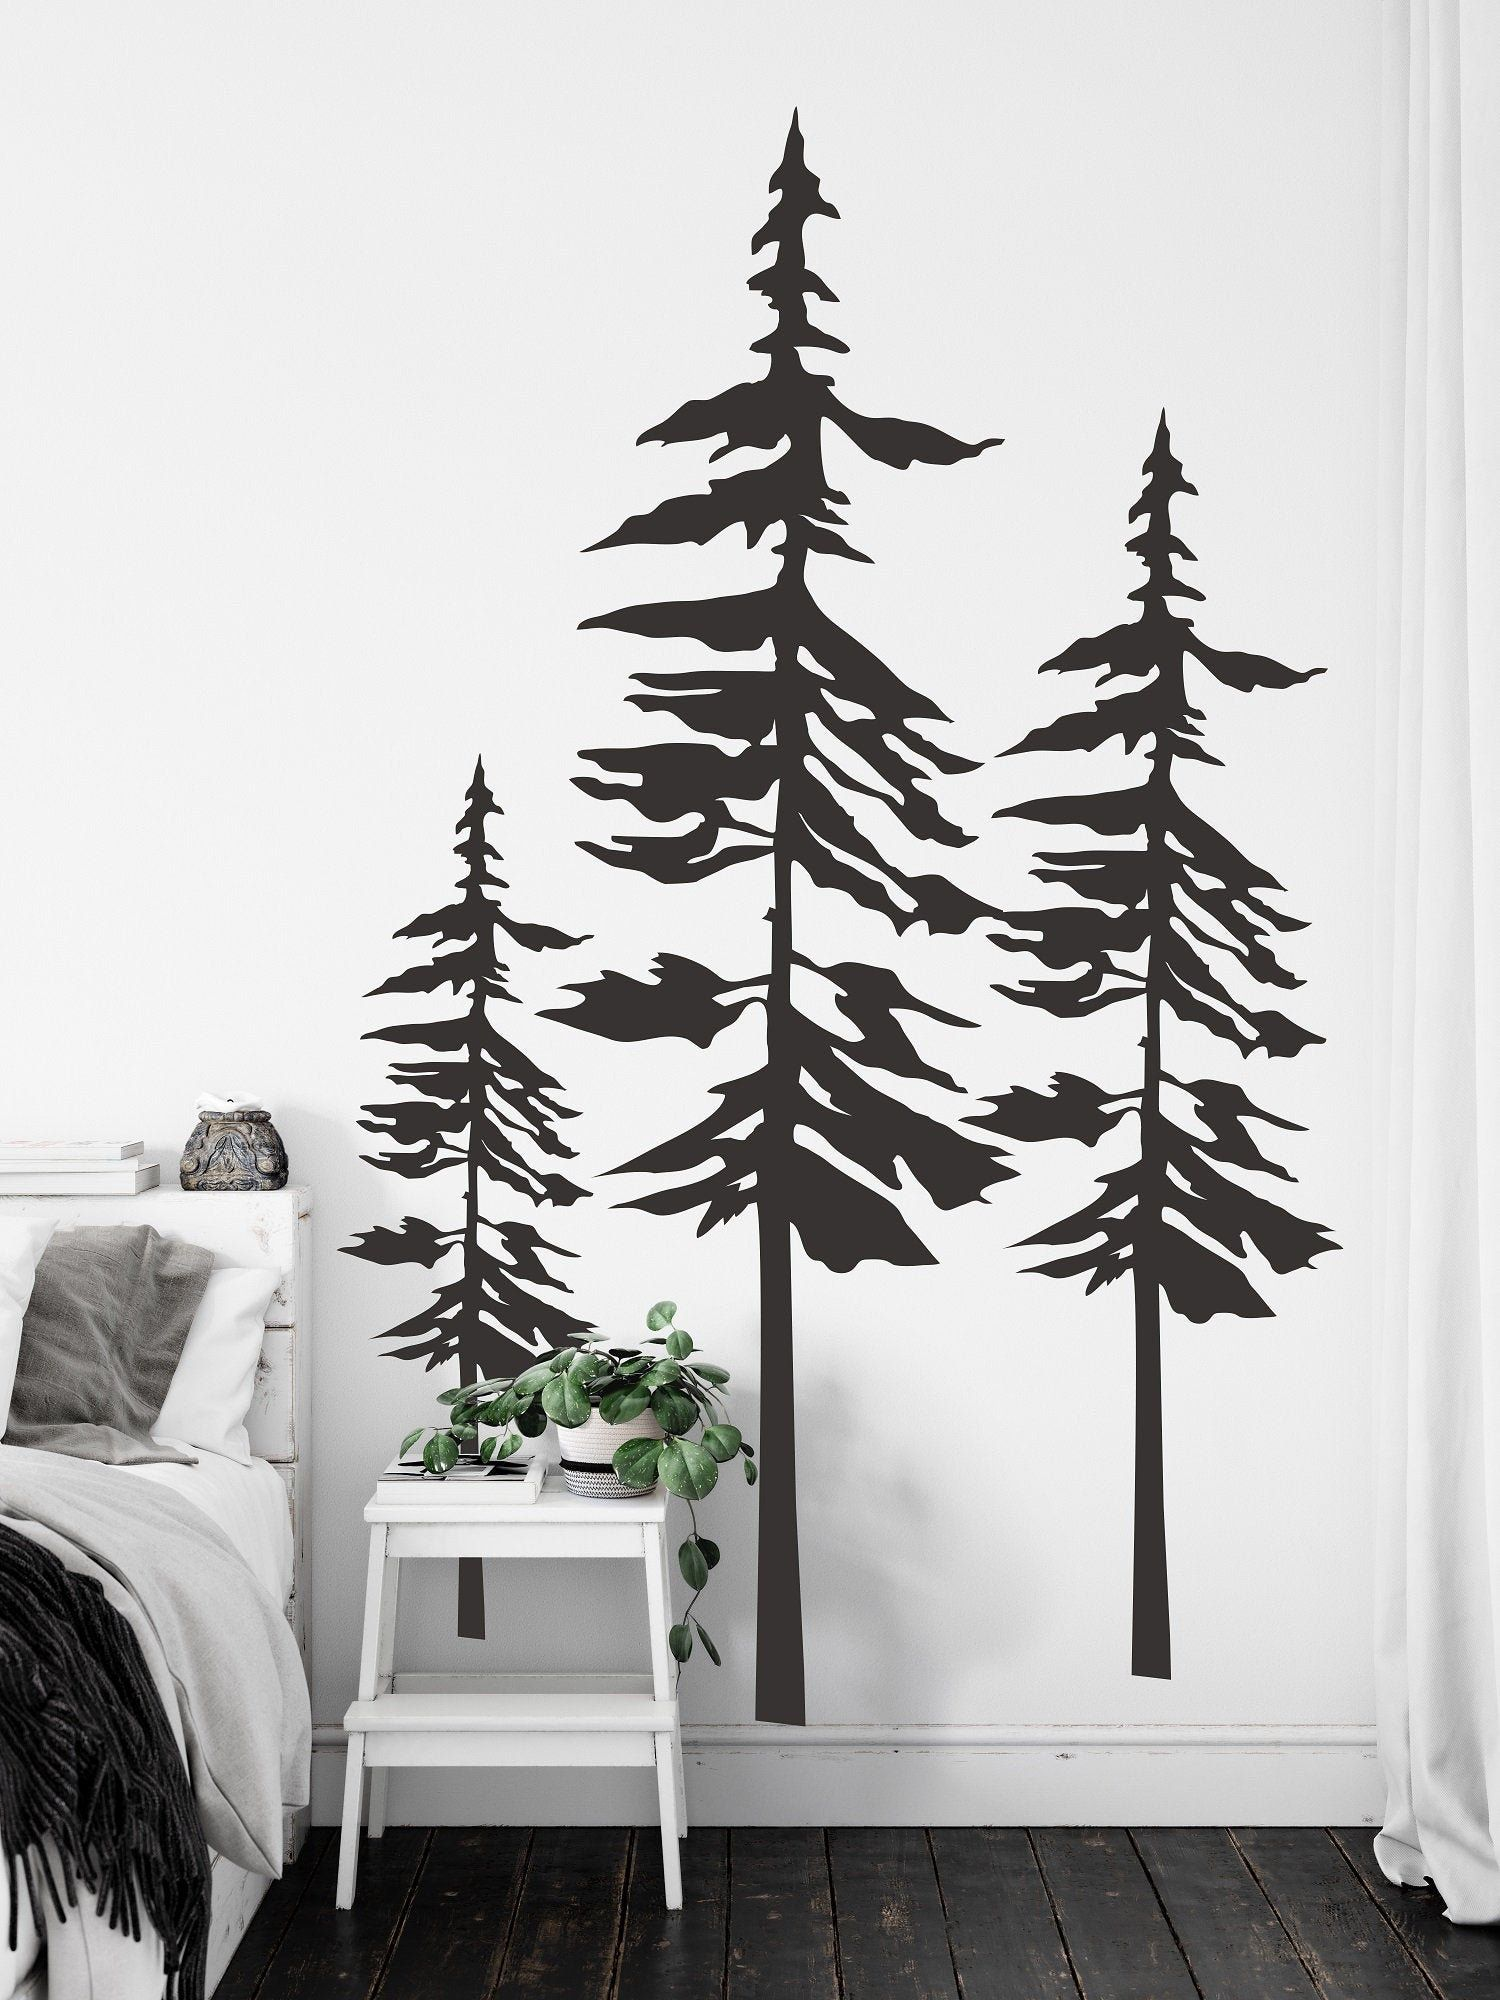 Pine Trees Wall Decal Forest Wall Art Pine Tree Decor Set Of 3 Pine Trees Sticker Nature Landscape Wall Decor Woodland Home Decor Sb45 Landscape Walls Wall Decals Tree Wall